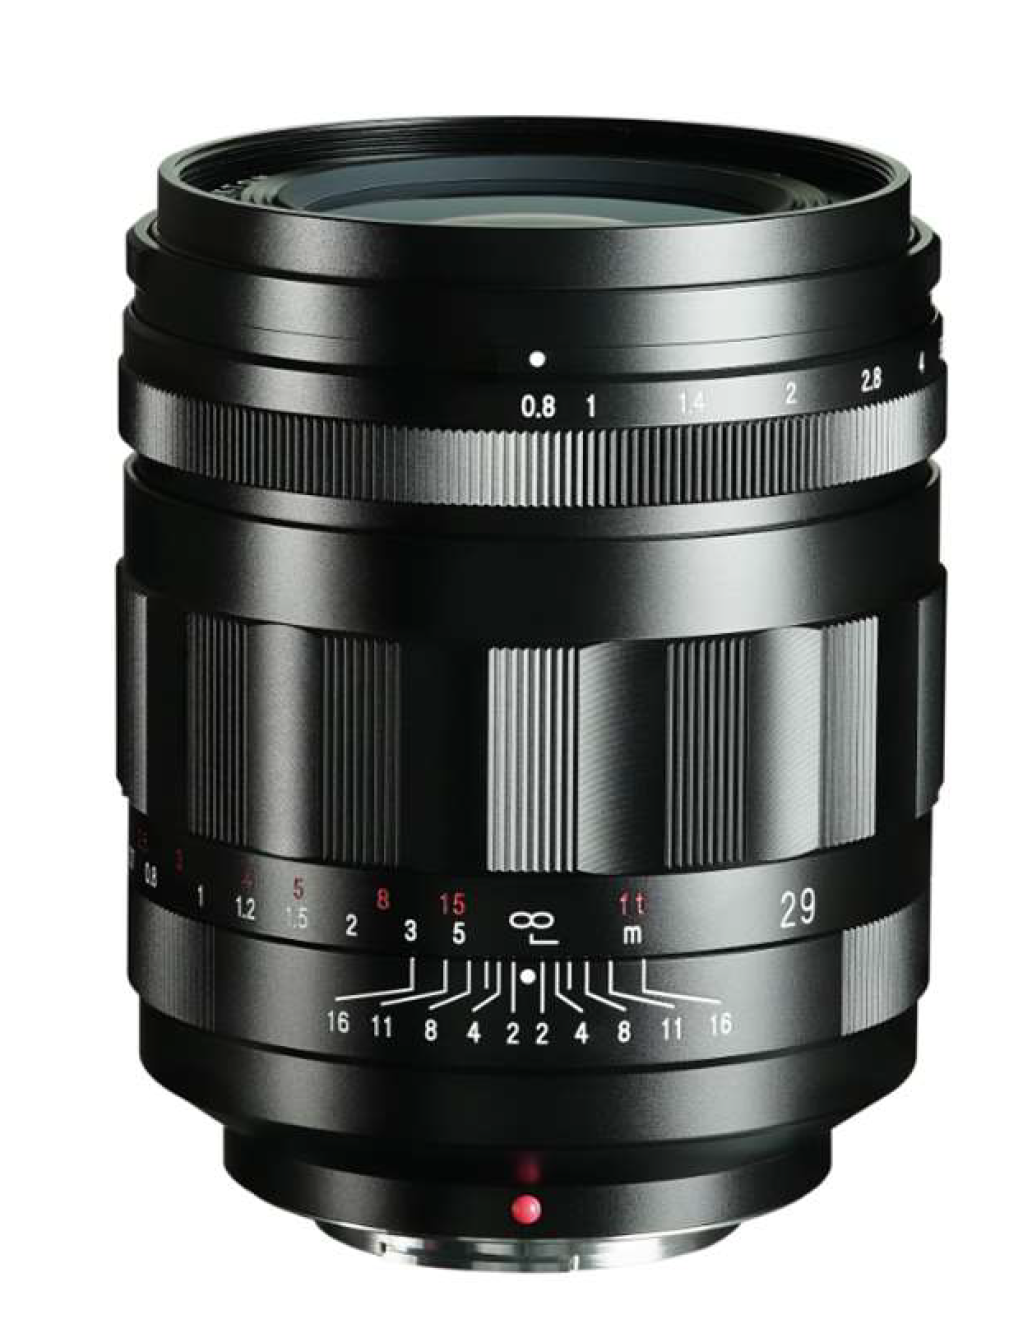 Voigtlander 29mm f0.8 ASPHERICAL NOKTON for micro four thirds (58mm equivalent) New USA